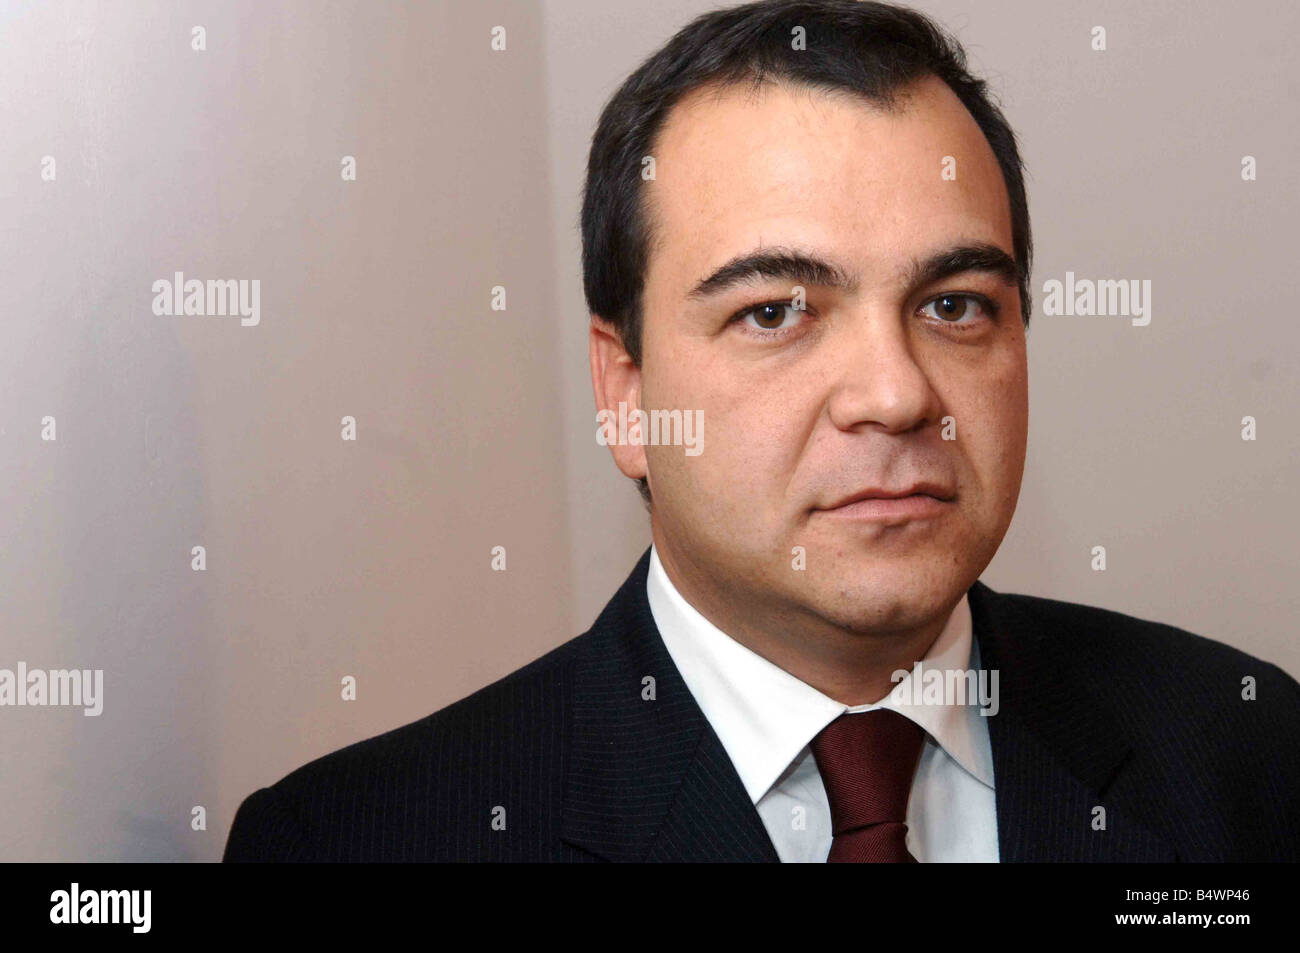 Professor Mario Scaramella who met for lunch in a London sushi bar with former Russian secret service agent Alexander - Stock Image